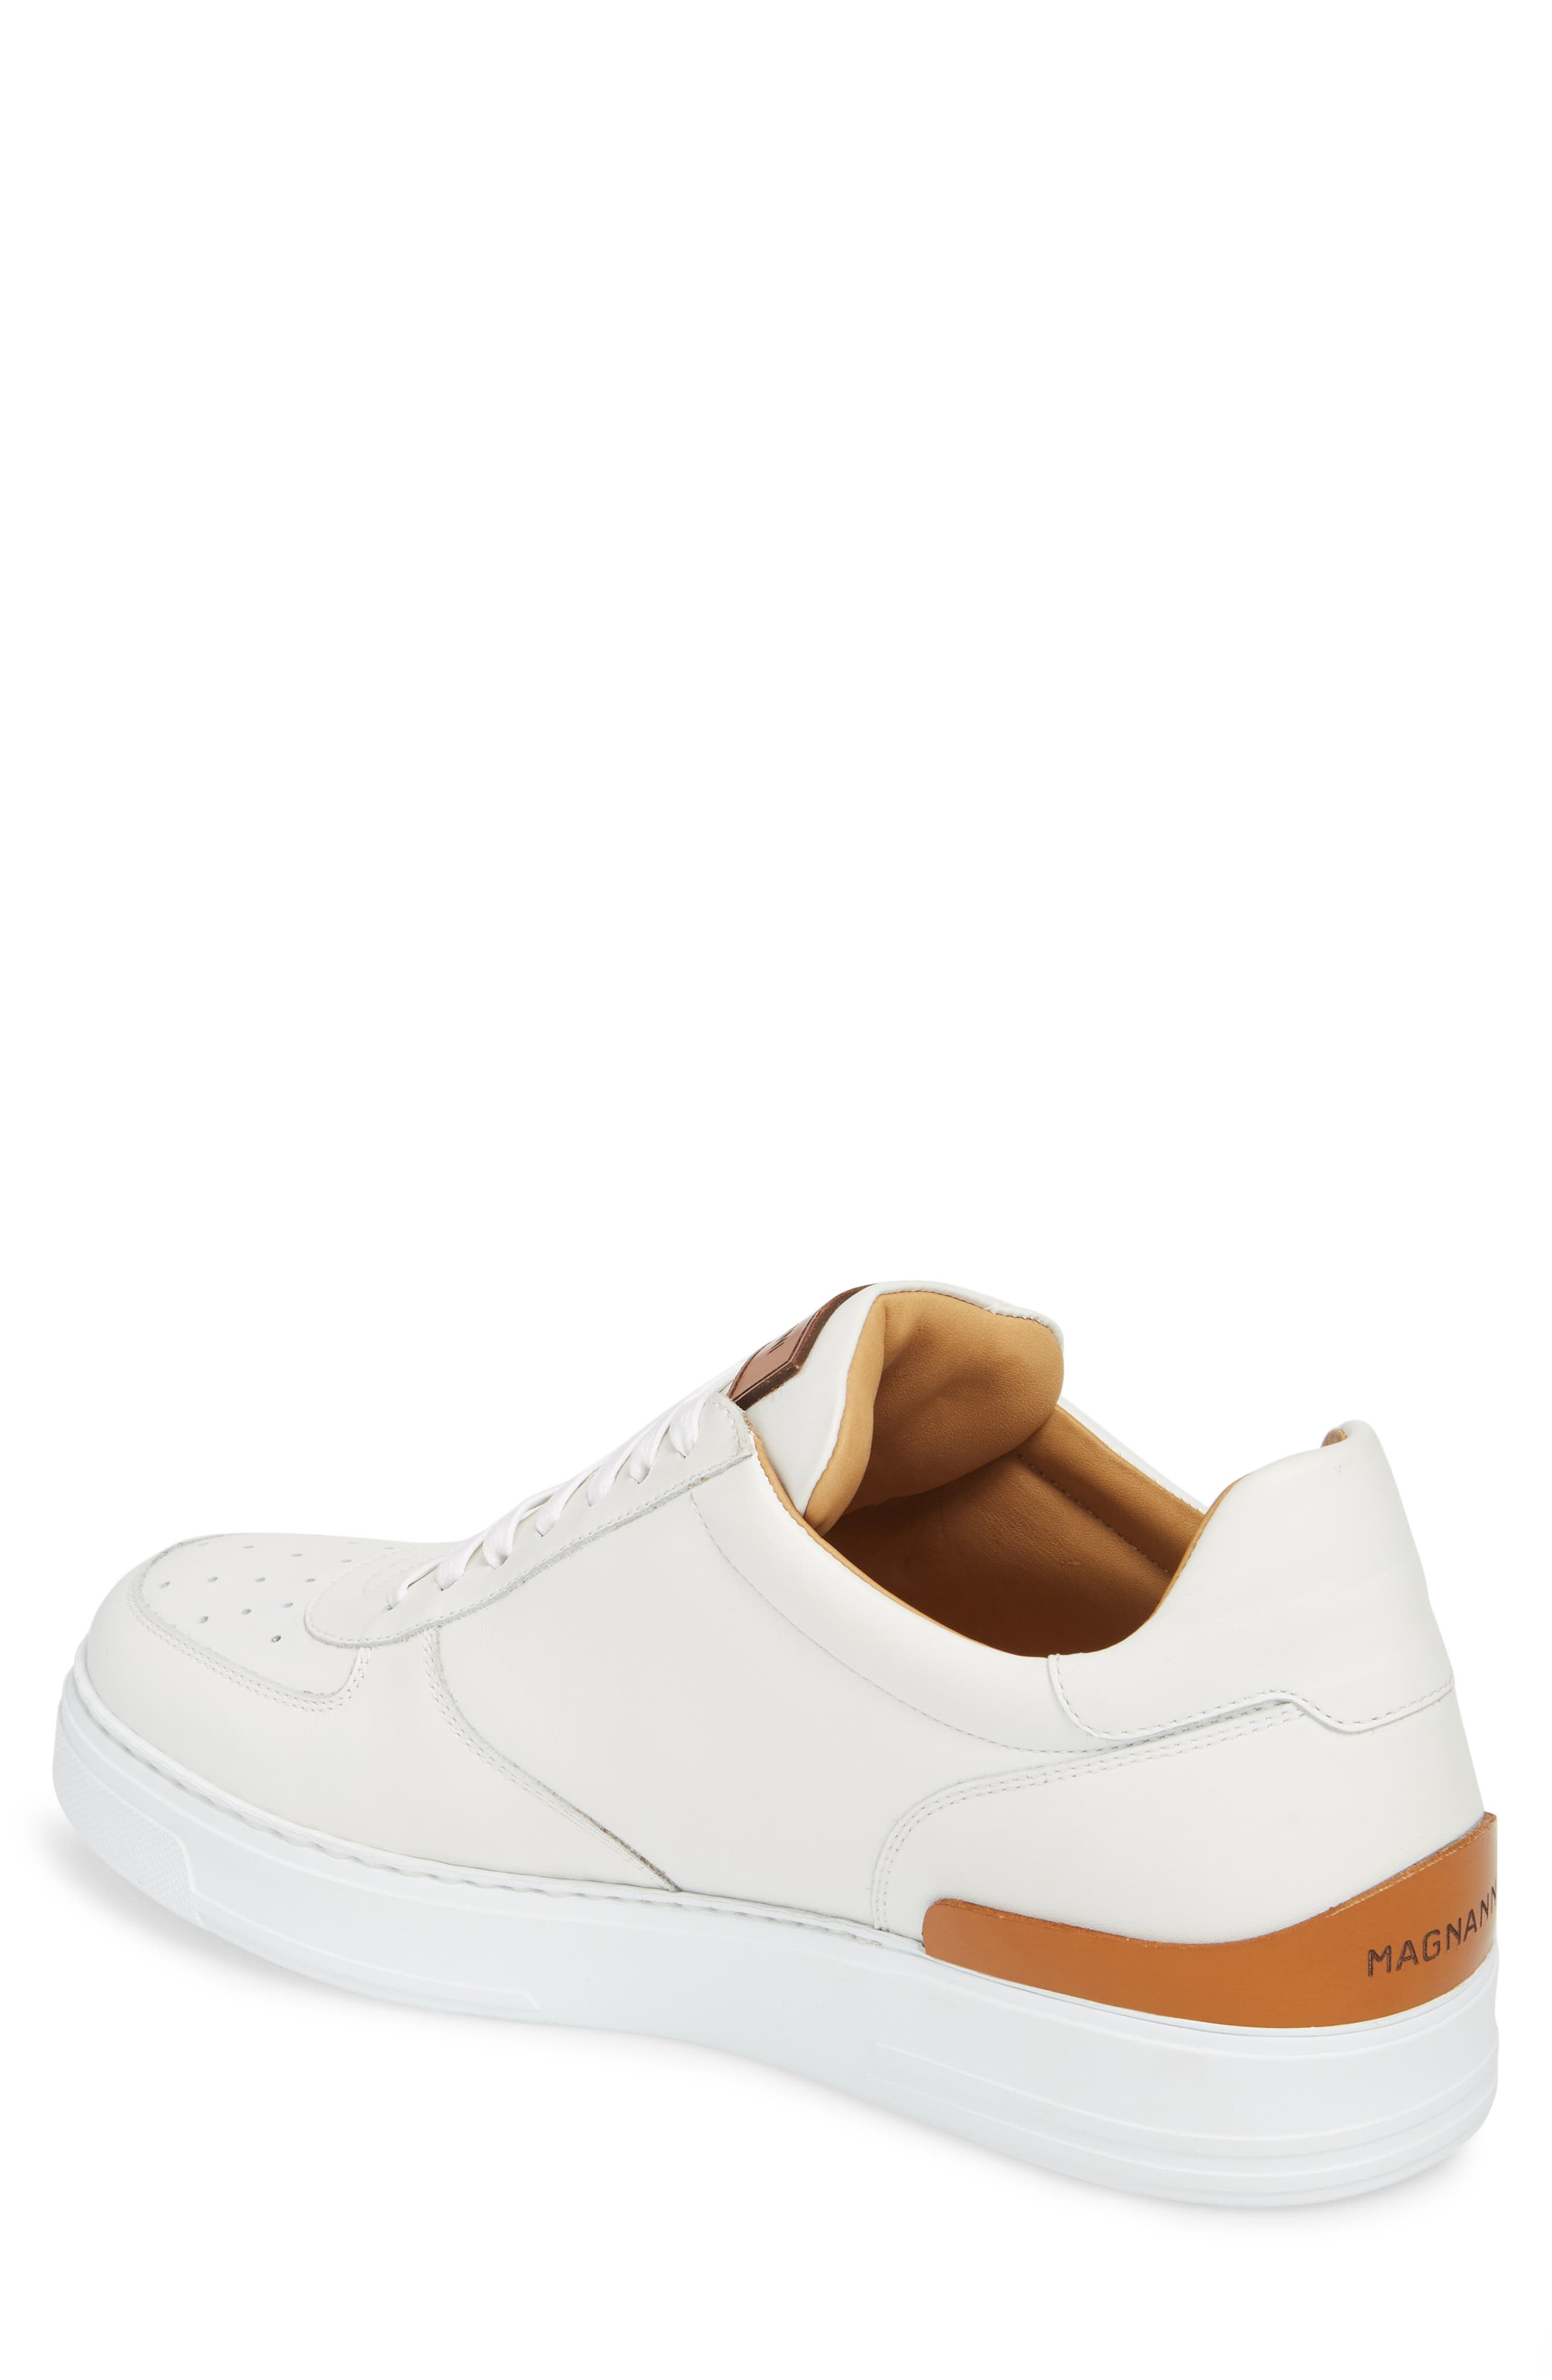 Vada Lo Lace Up Sneaker,                             Alternate thumbnail 2, color,                             WHITE LEATHER